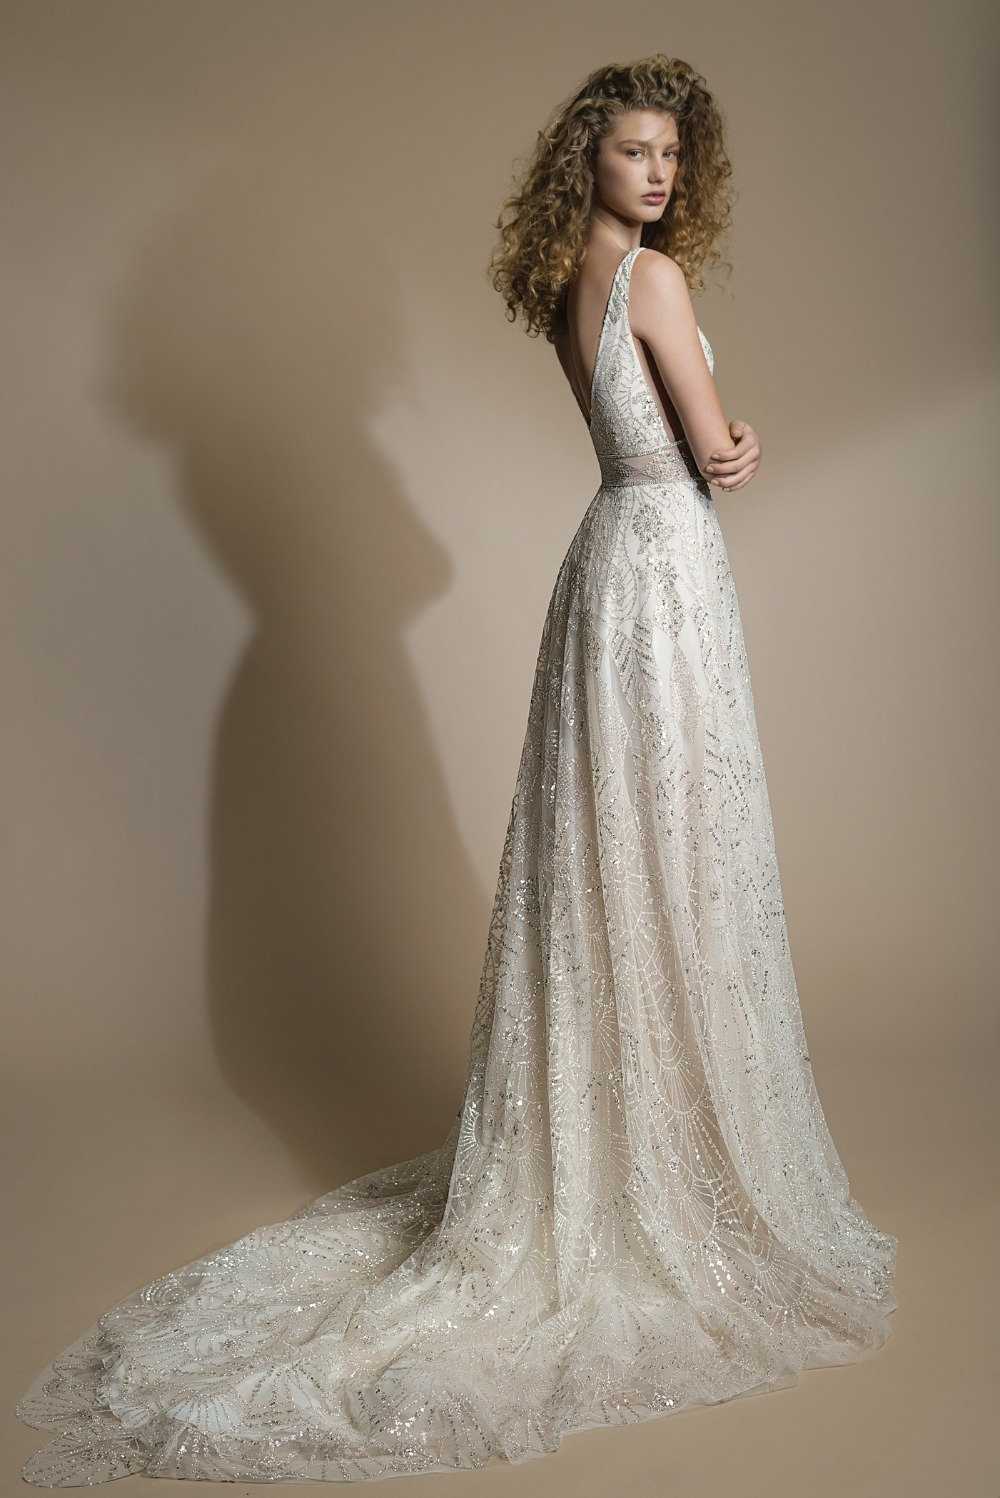 shimmering sequined tulle with a striking Galia Lahav wedding dress with a geometric silver patter over a nude background